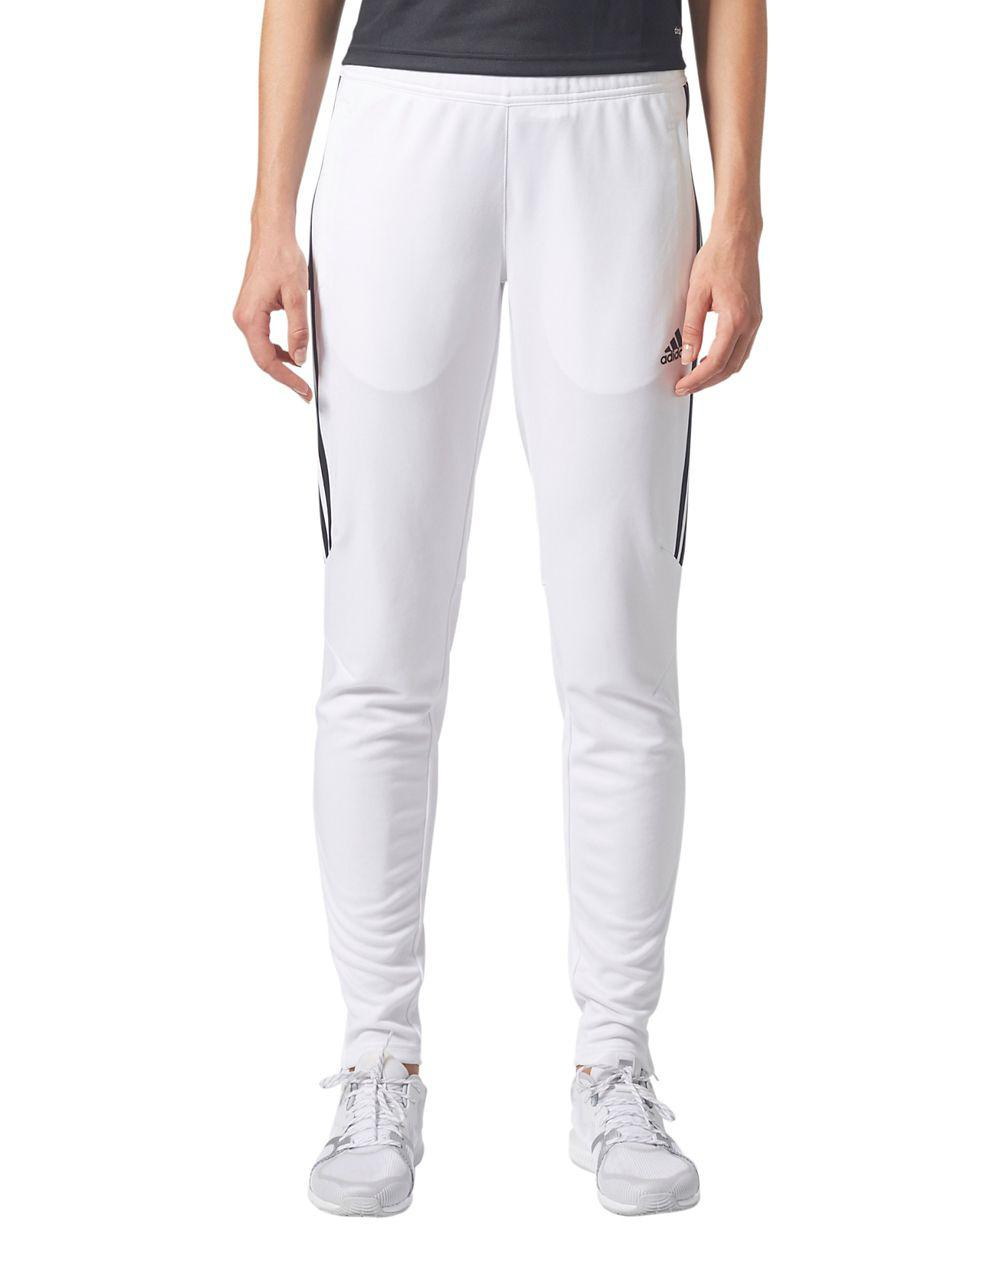 adidas. Women s White Tiro17 Training Trousers d654afe975a2